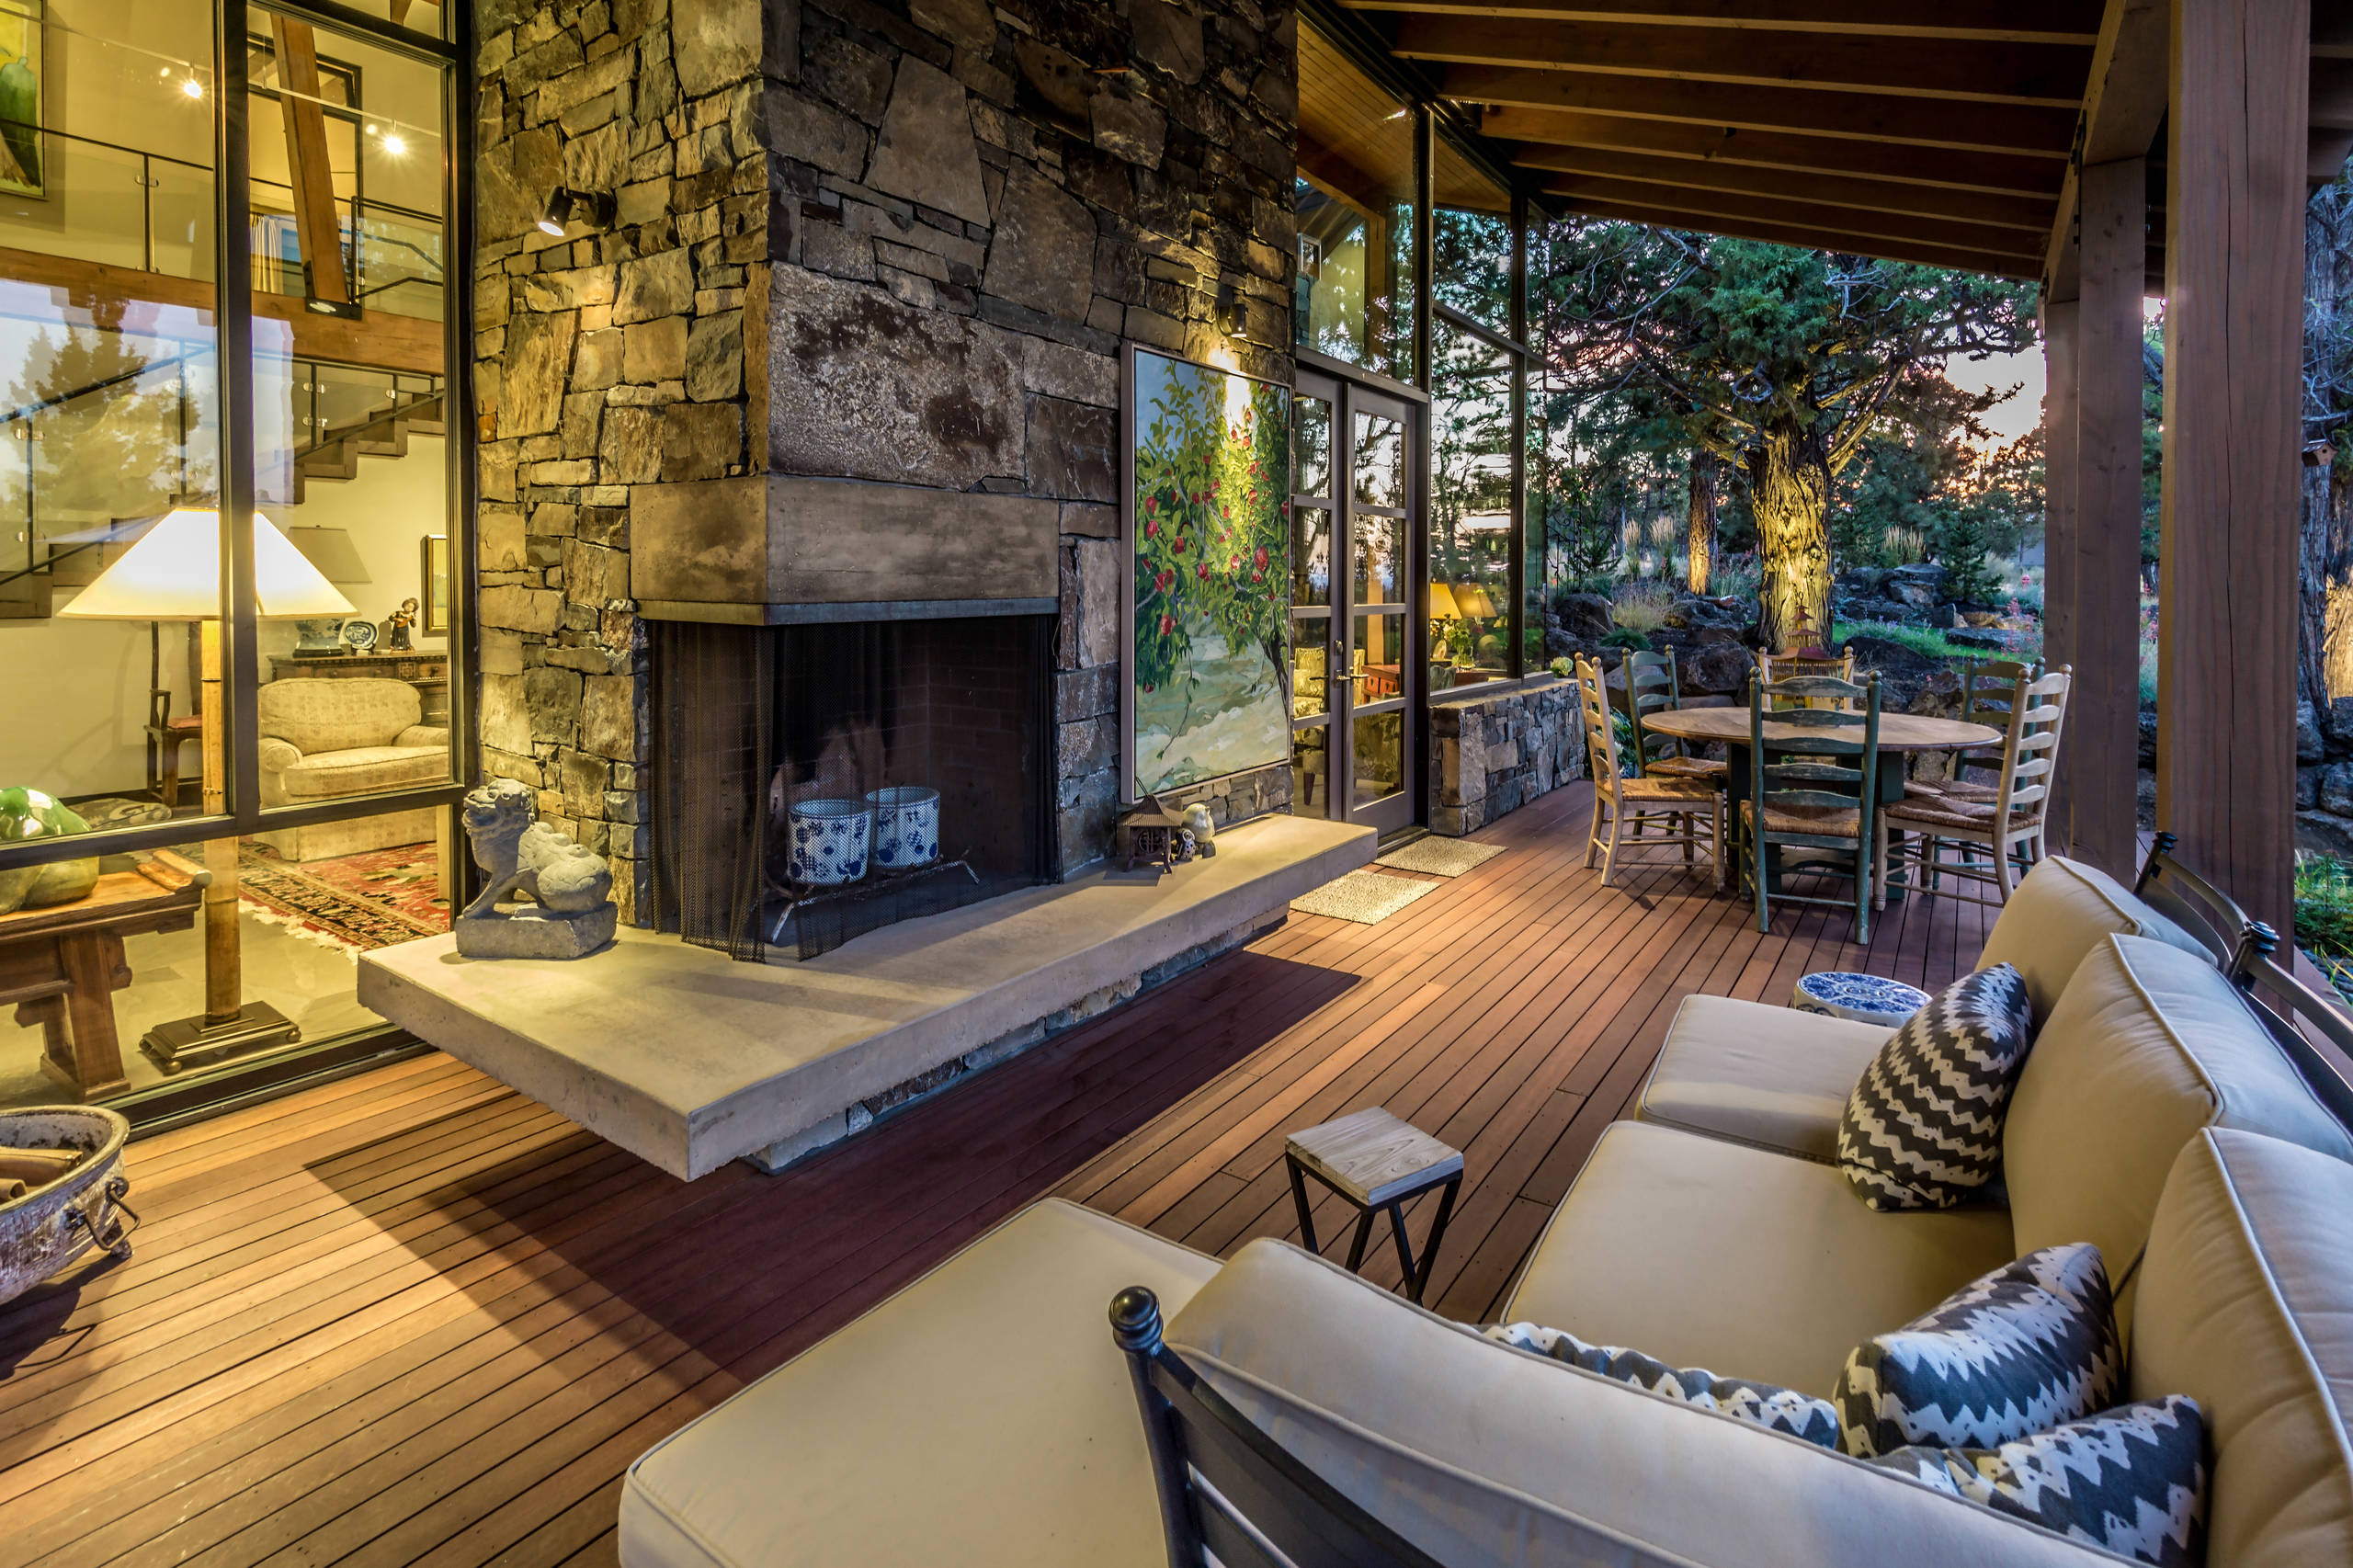 Best 43 Inspiration Wonderful Rustic Deck Designs That Will Enhance Your Outdoor Living